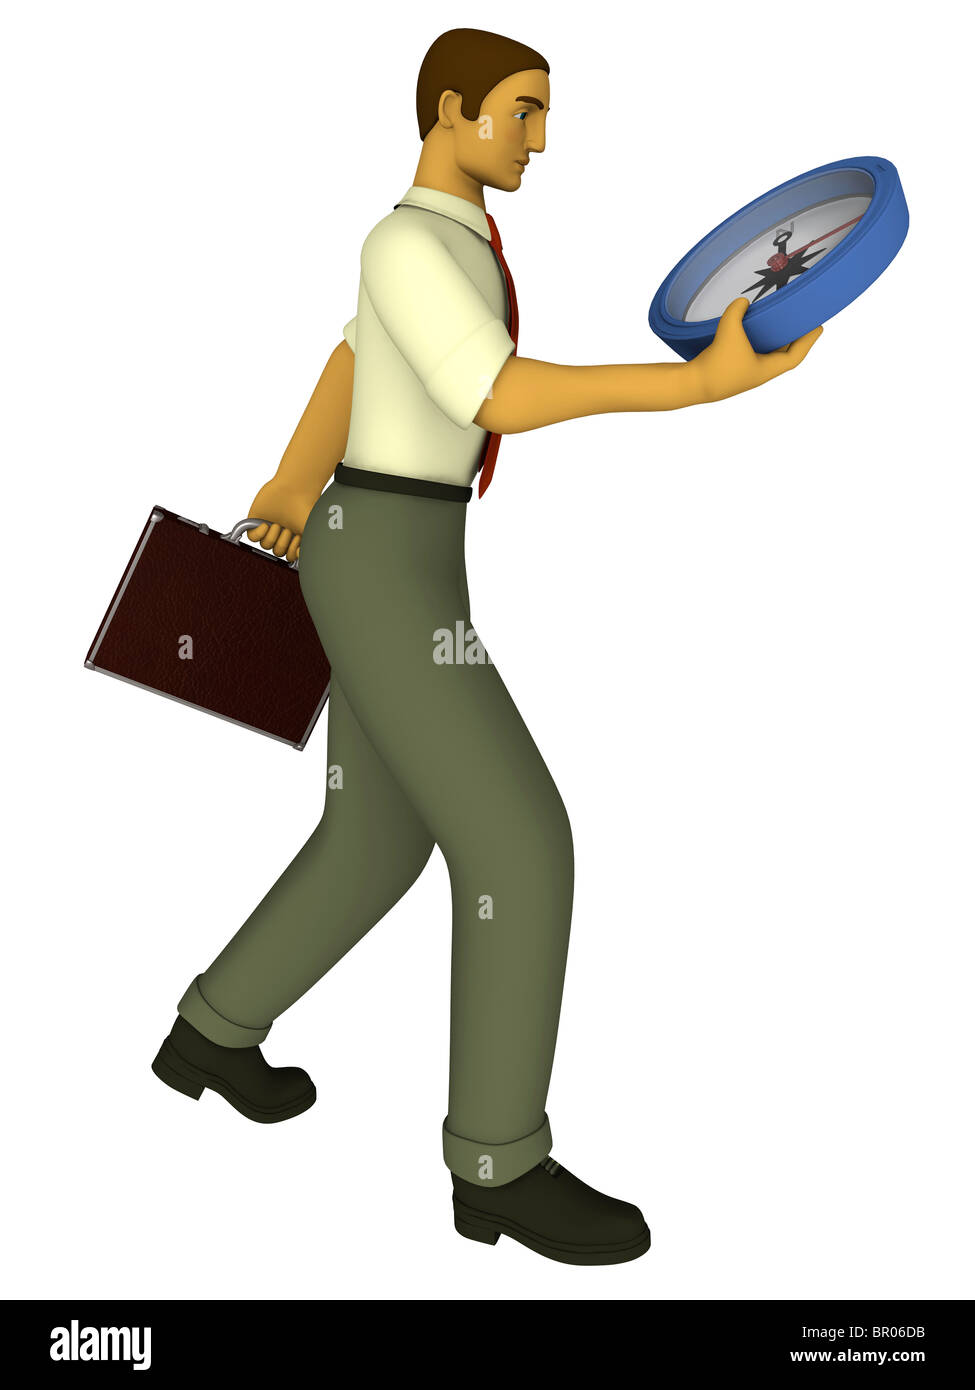 A business man being directed by a compass illustrated in a 3D style - Stock Image